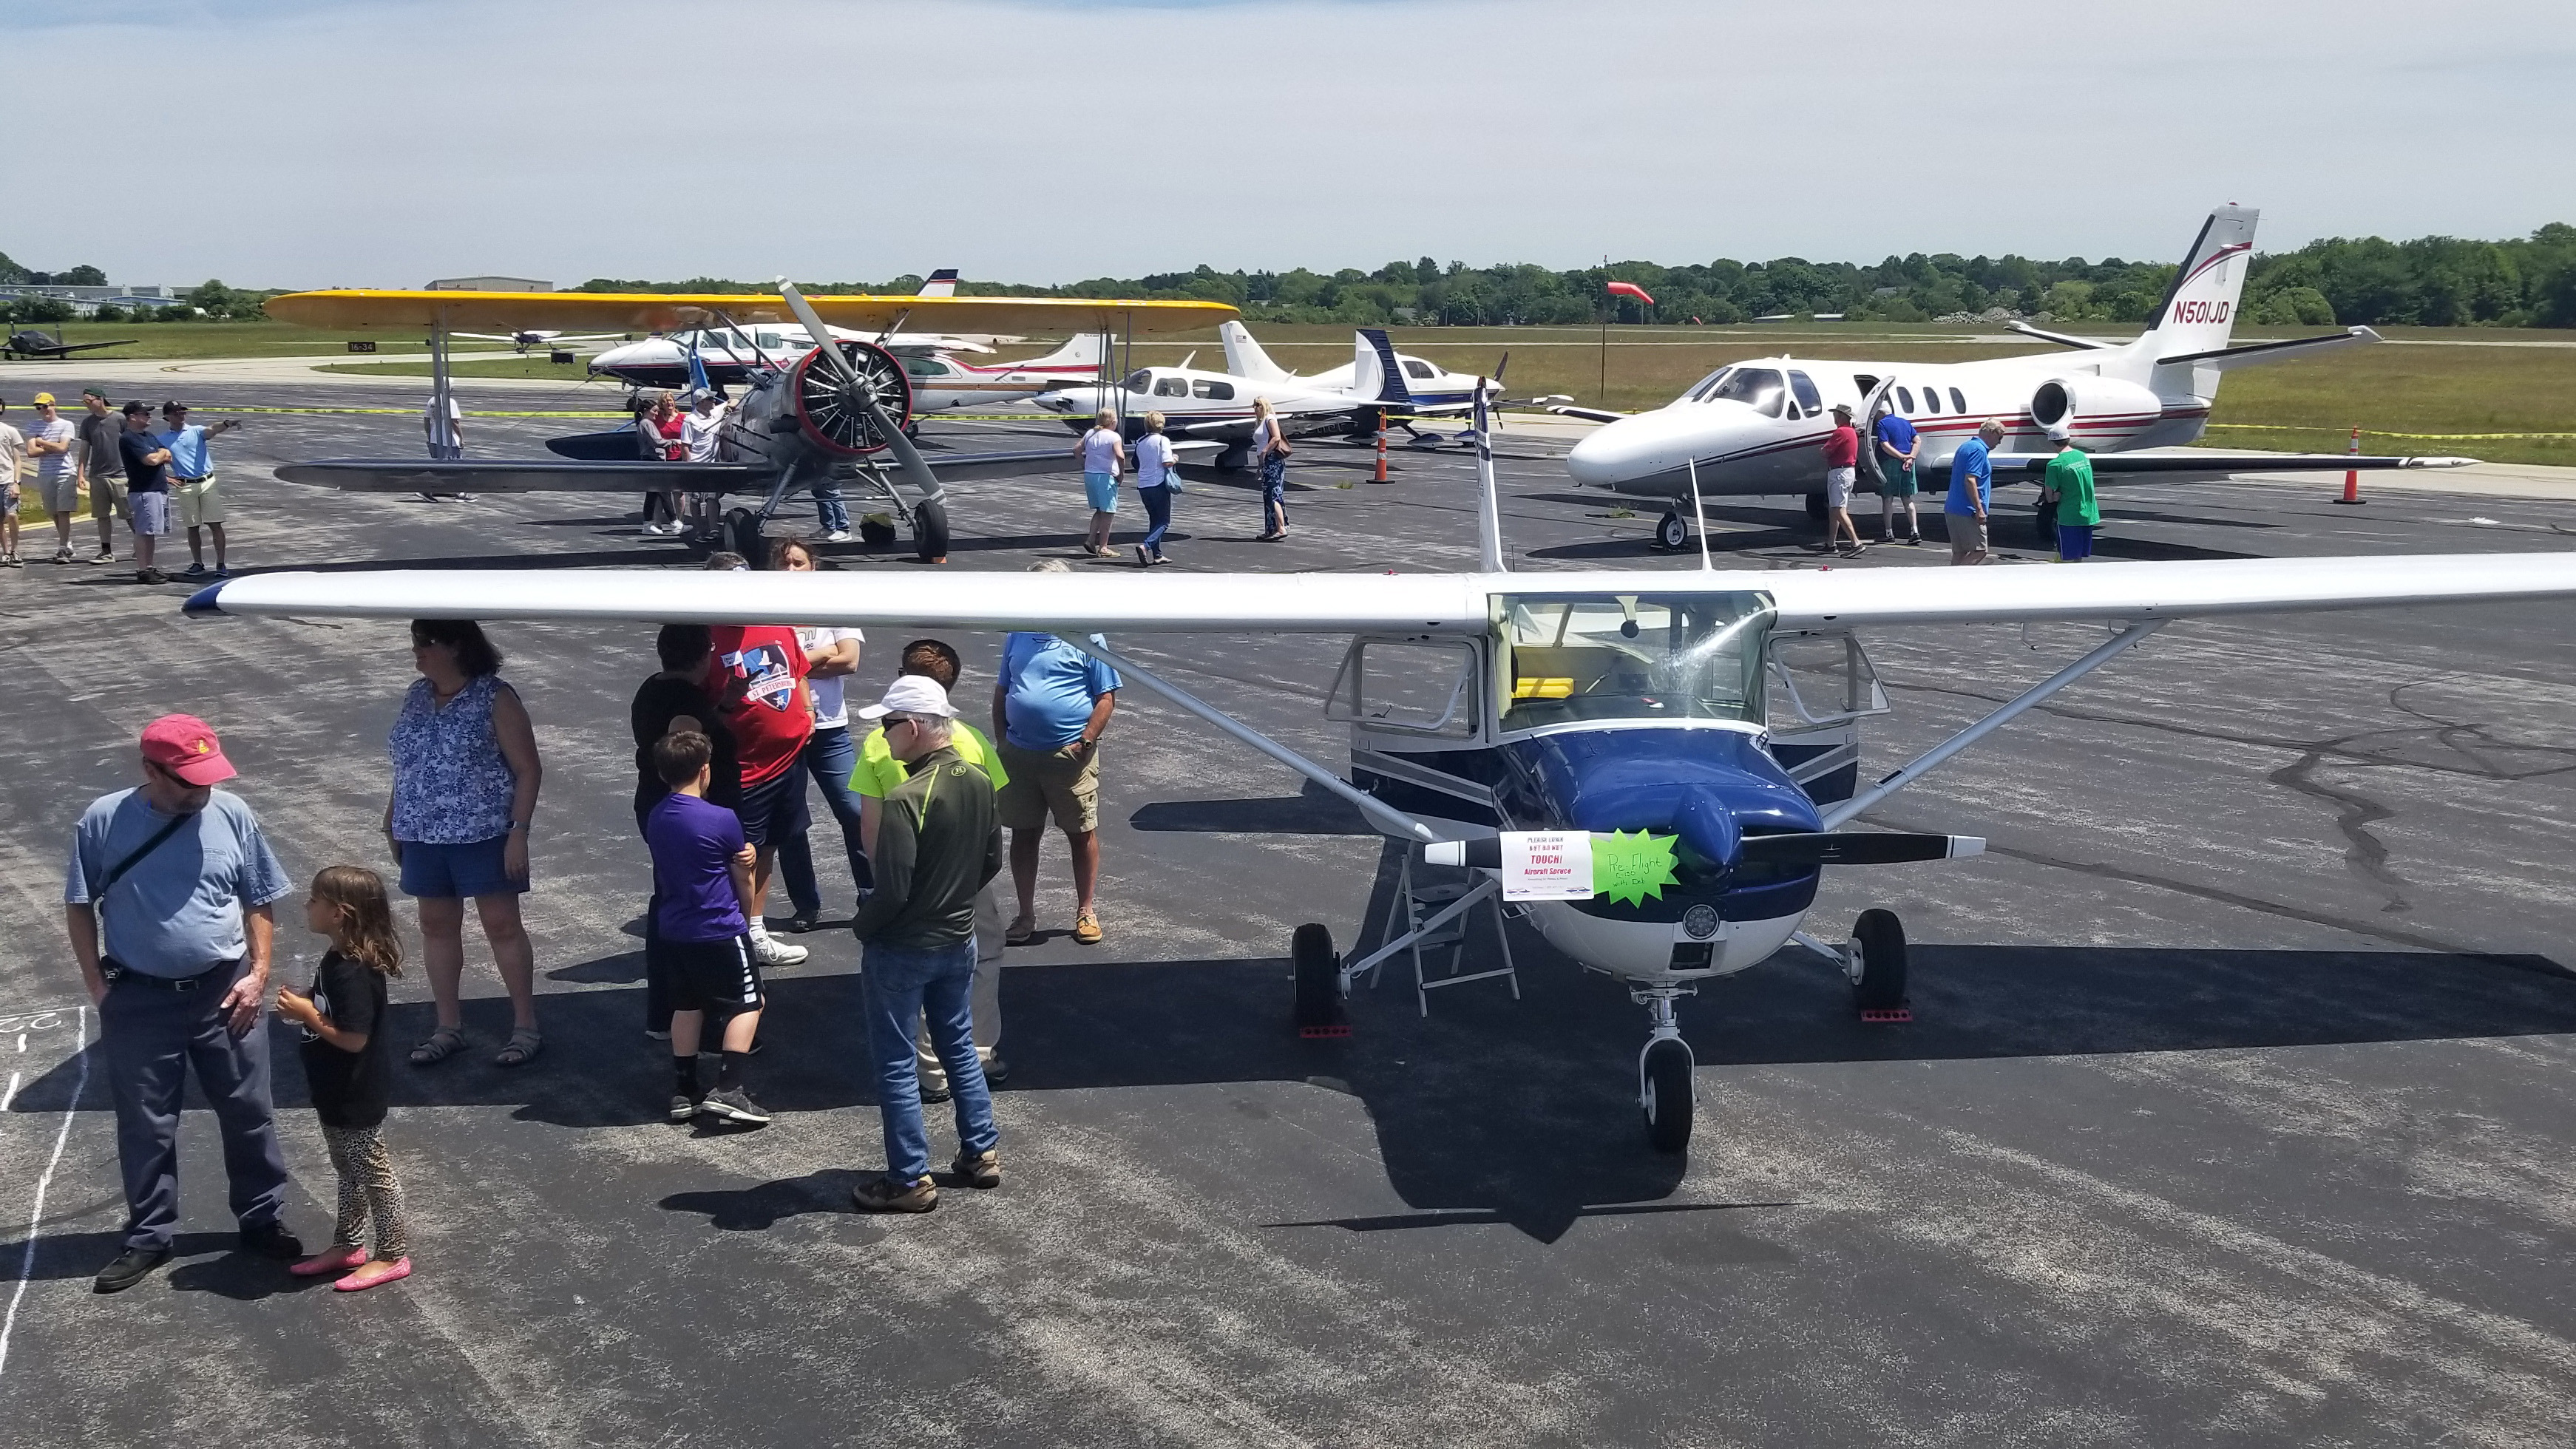 AOPA joined Newport State Airport officials, business owners, and volunteers in welcoming residents of Newport, Rhode Island, to see what their airport has to offer. Graeme Smith photo.